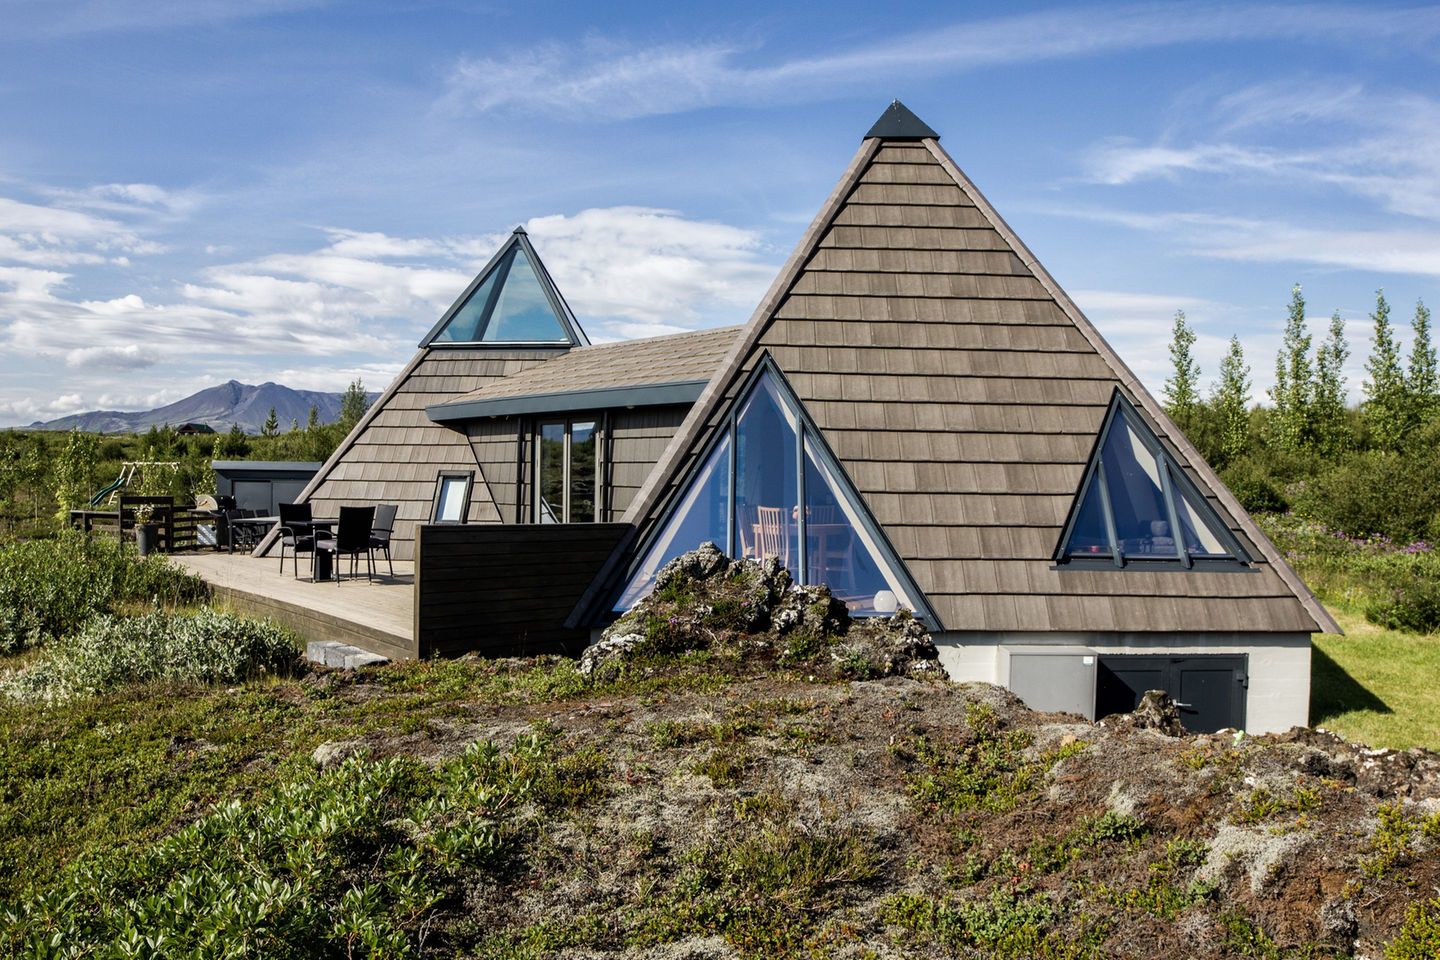 Pyramid Houses Gallery Stunning Pyramid Cottage In Iceland Small House Bliss